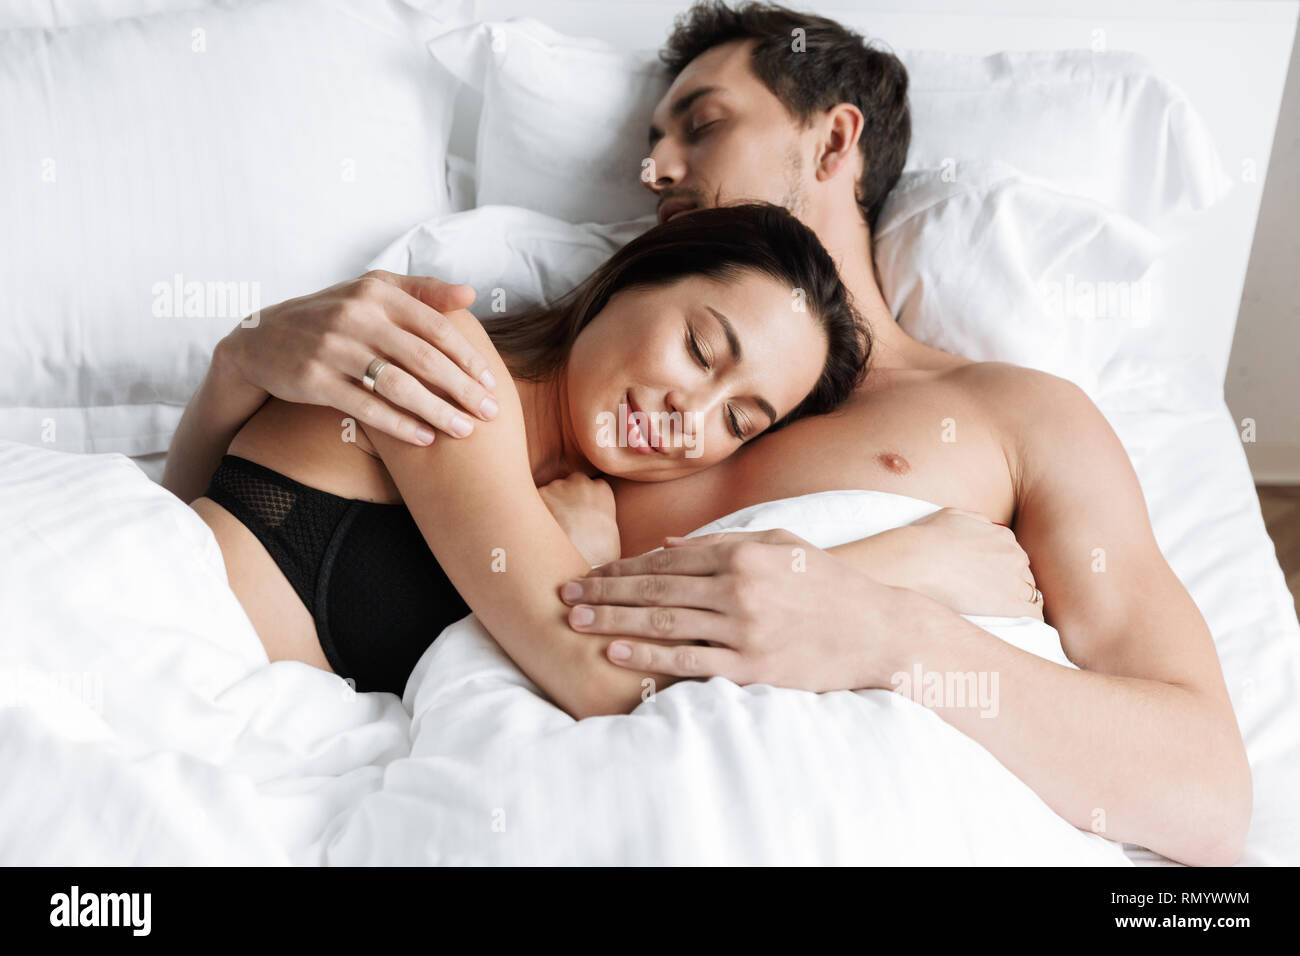 Photo Of Caucasian Couple Man And Woman Hugging Together While